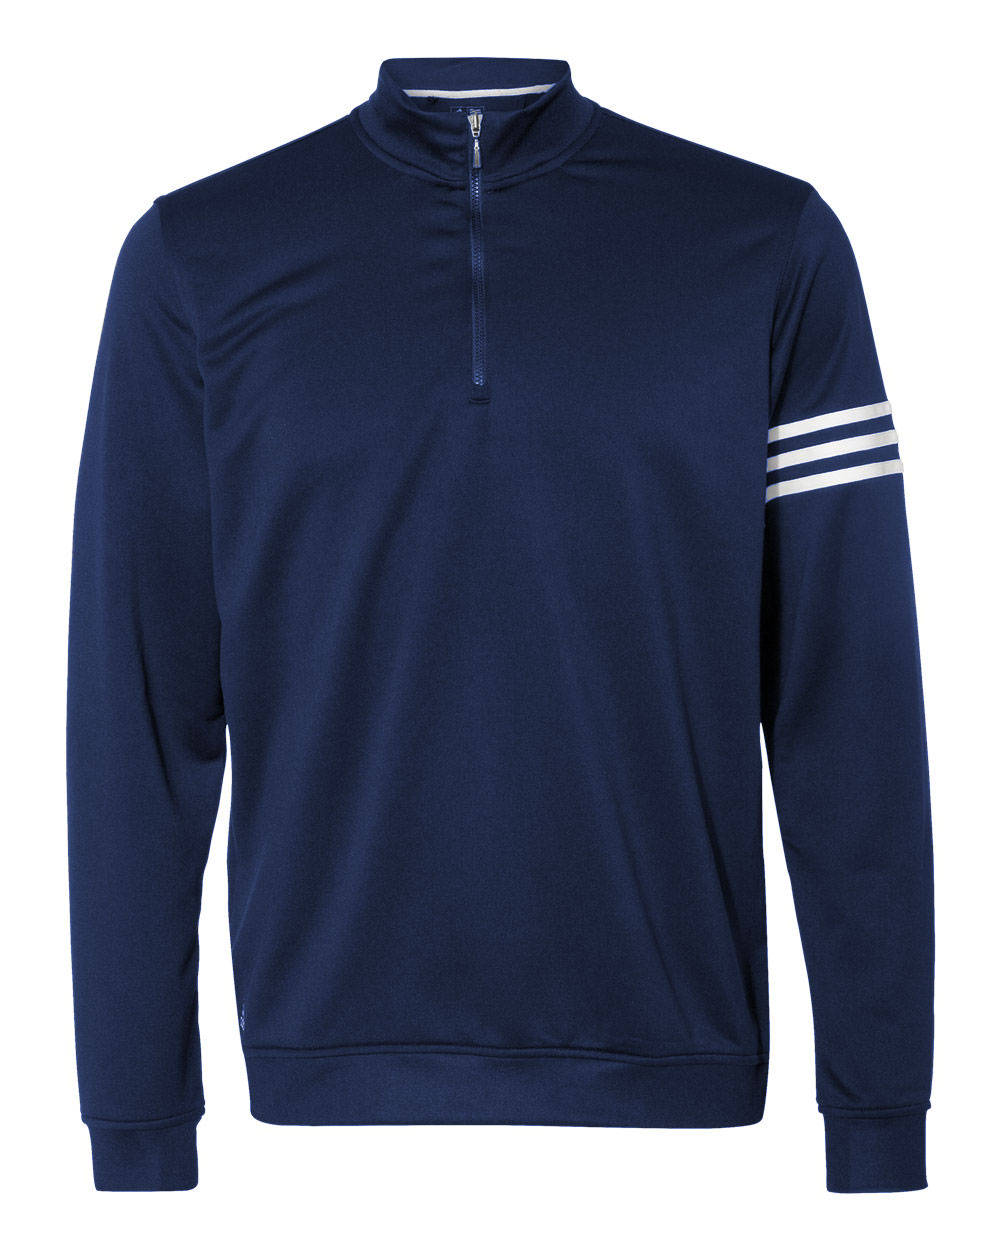 Adidas Golf Mens ClimaLite® 3-Stripes Pullover